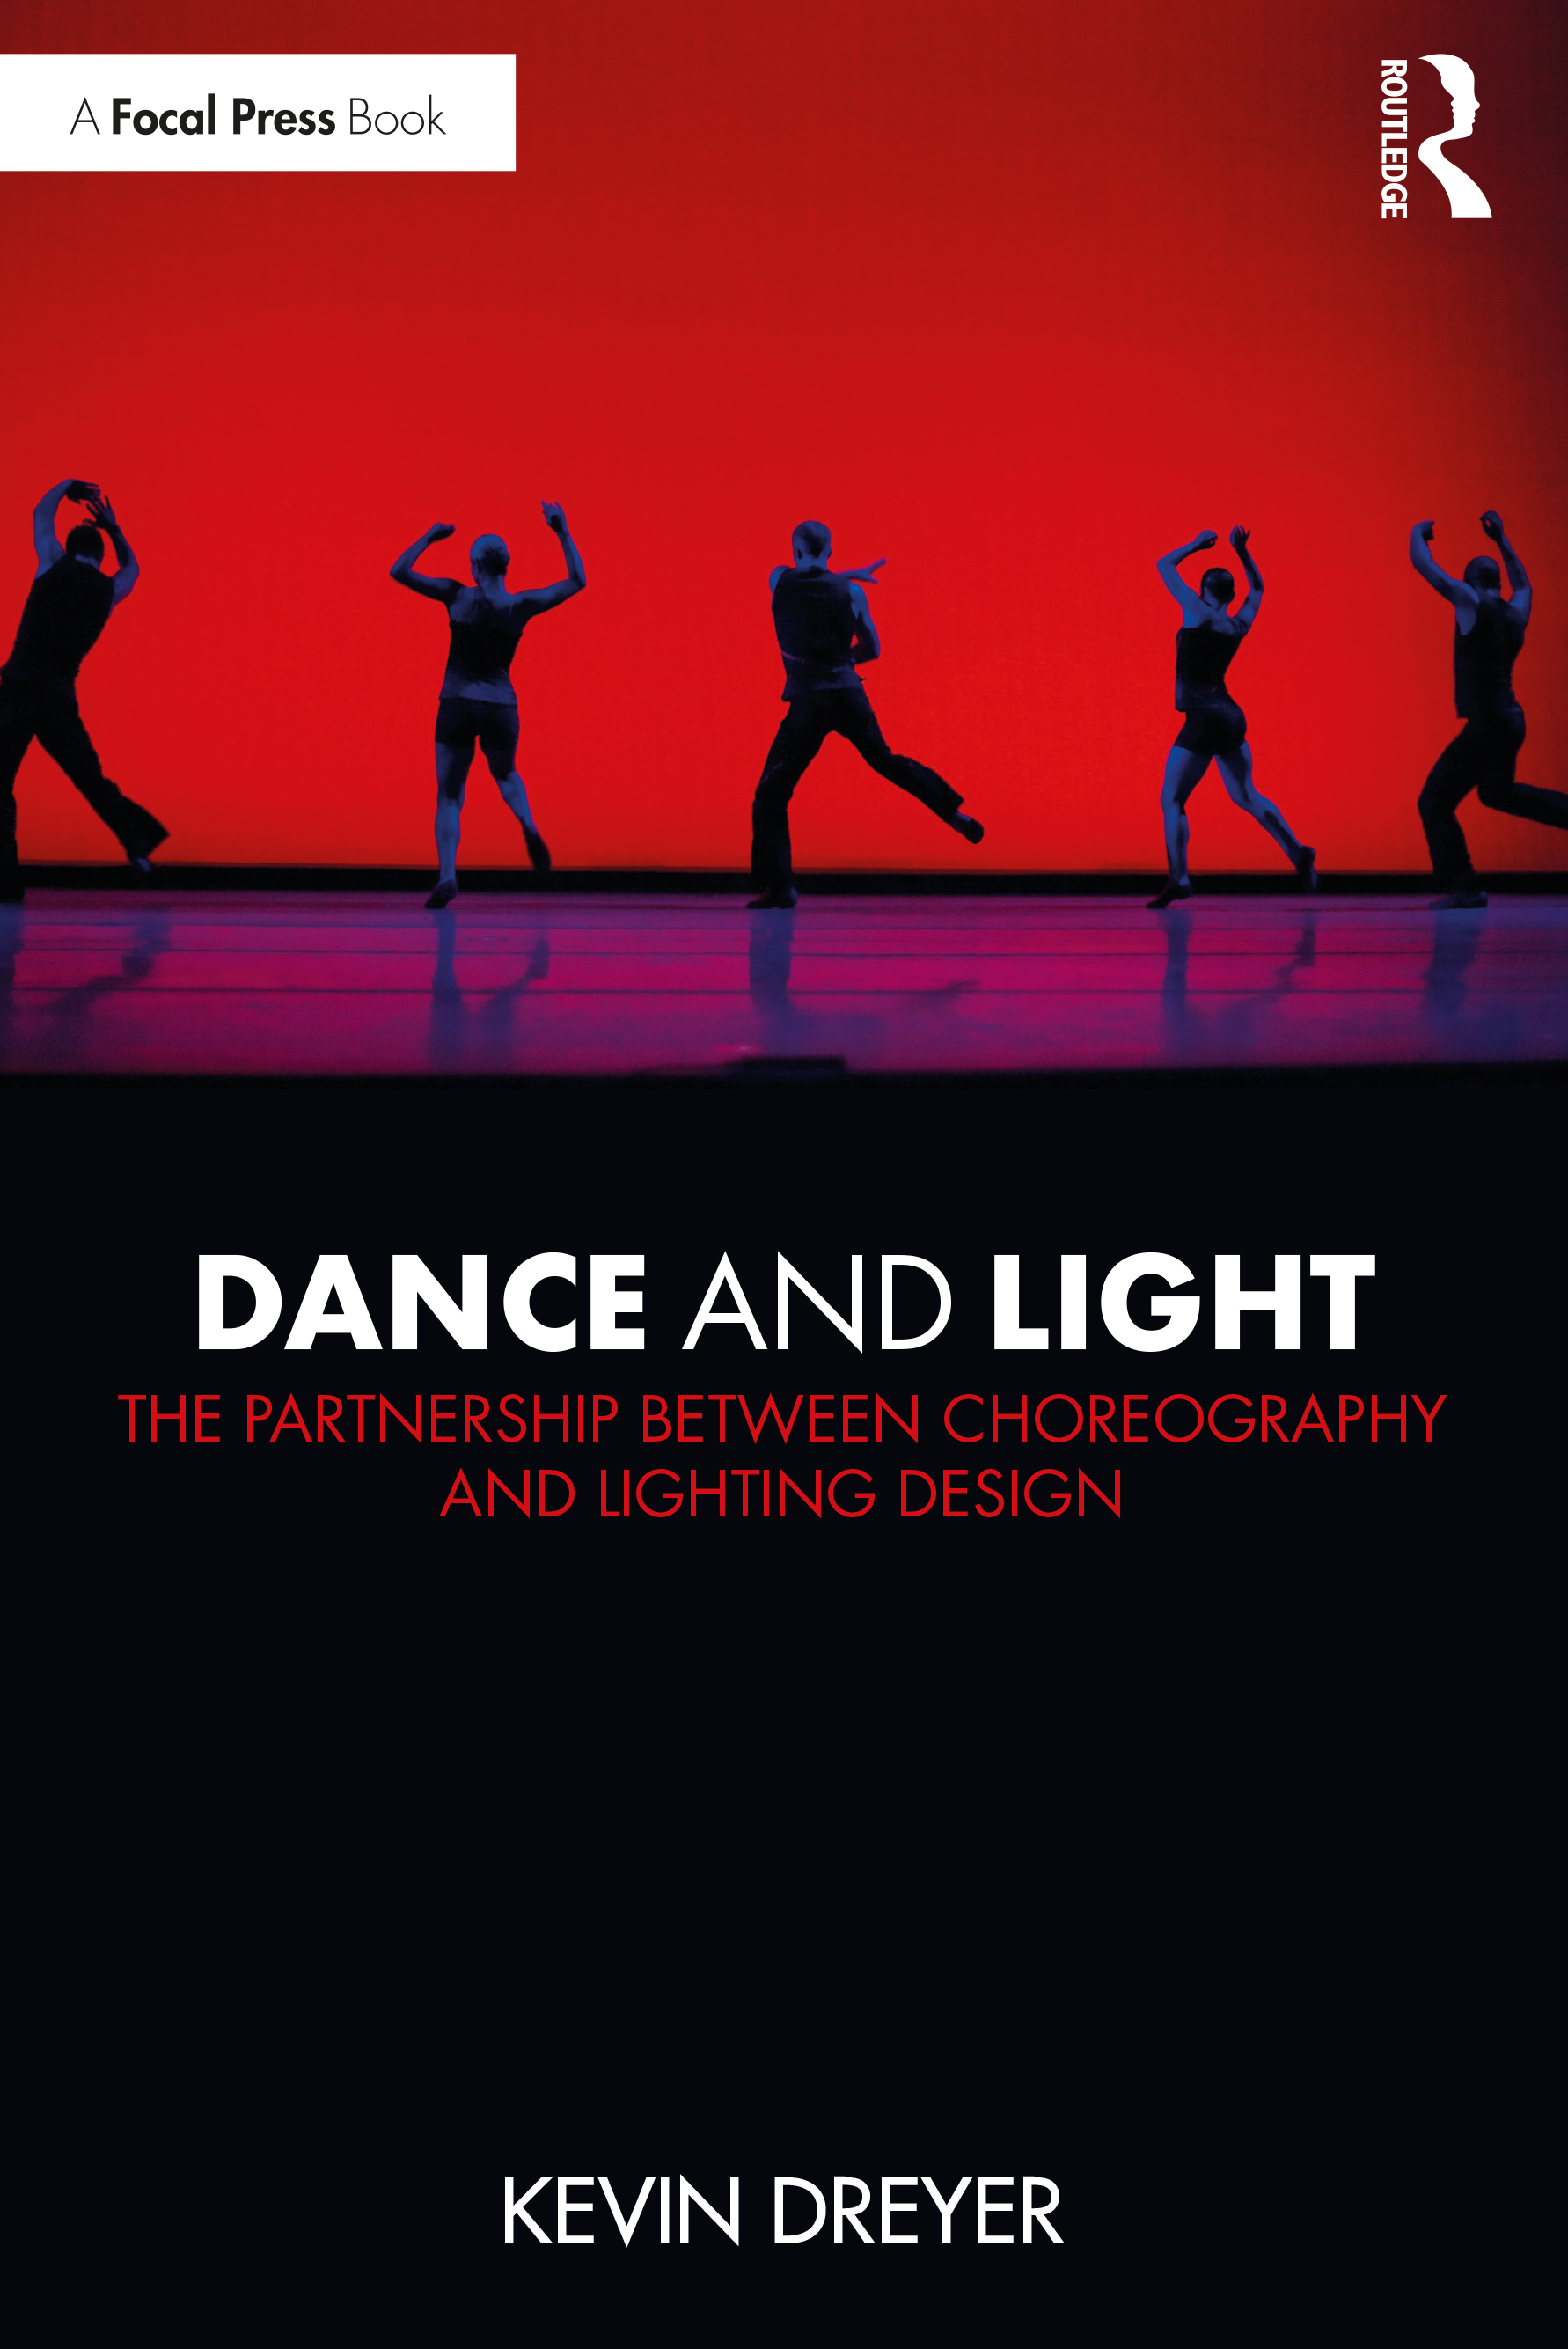 Dance and Light: The Partnership Between Choreography and Lighting Design book cover